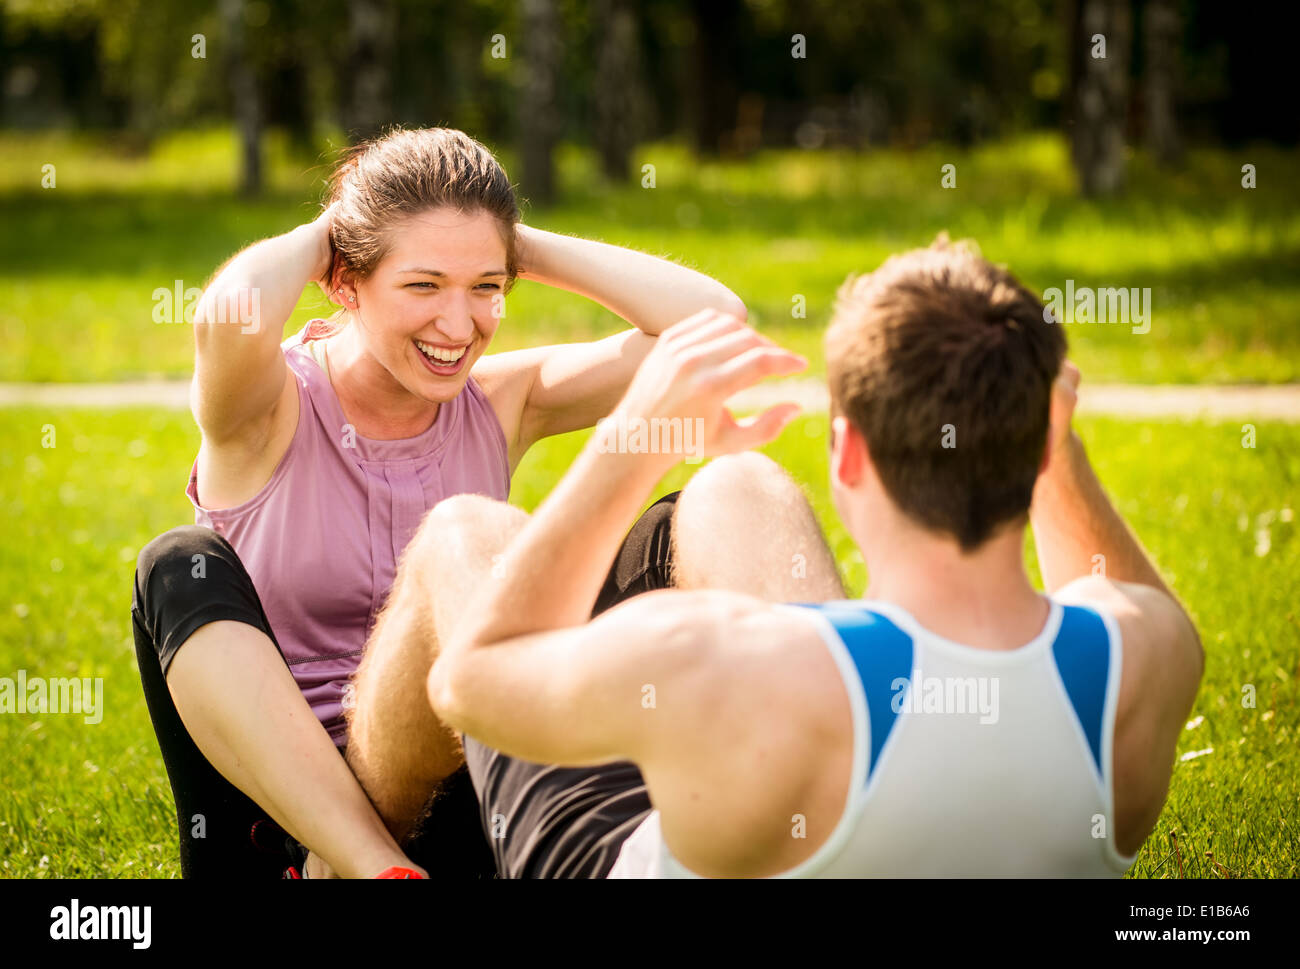 Sport couple making sit-ups together in nature on green grass - Stock Image